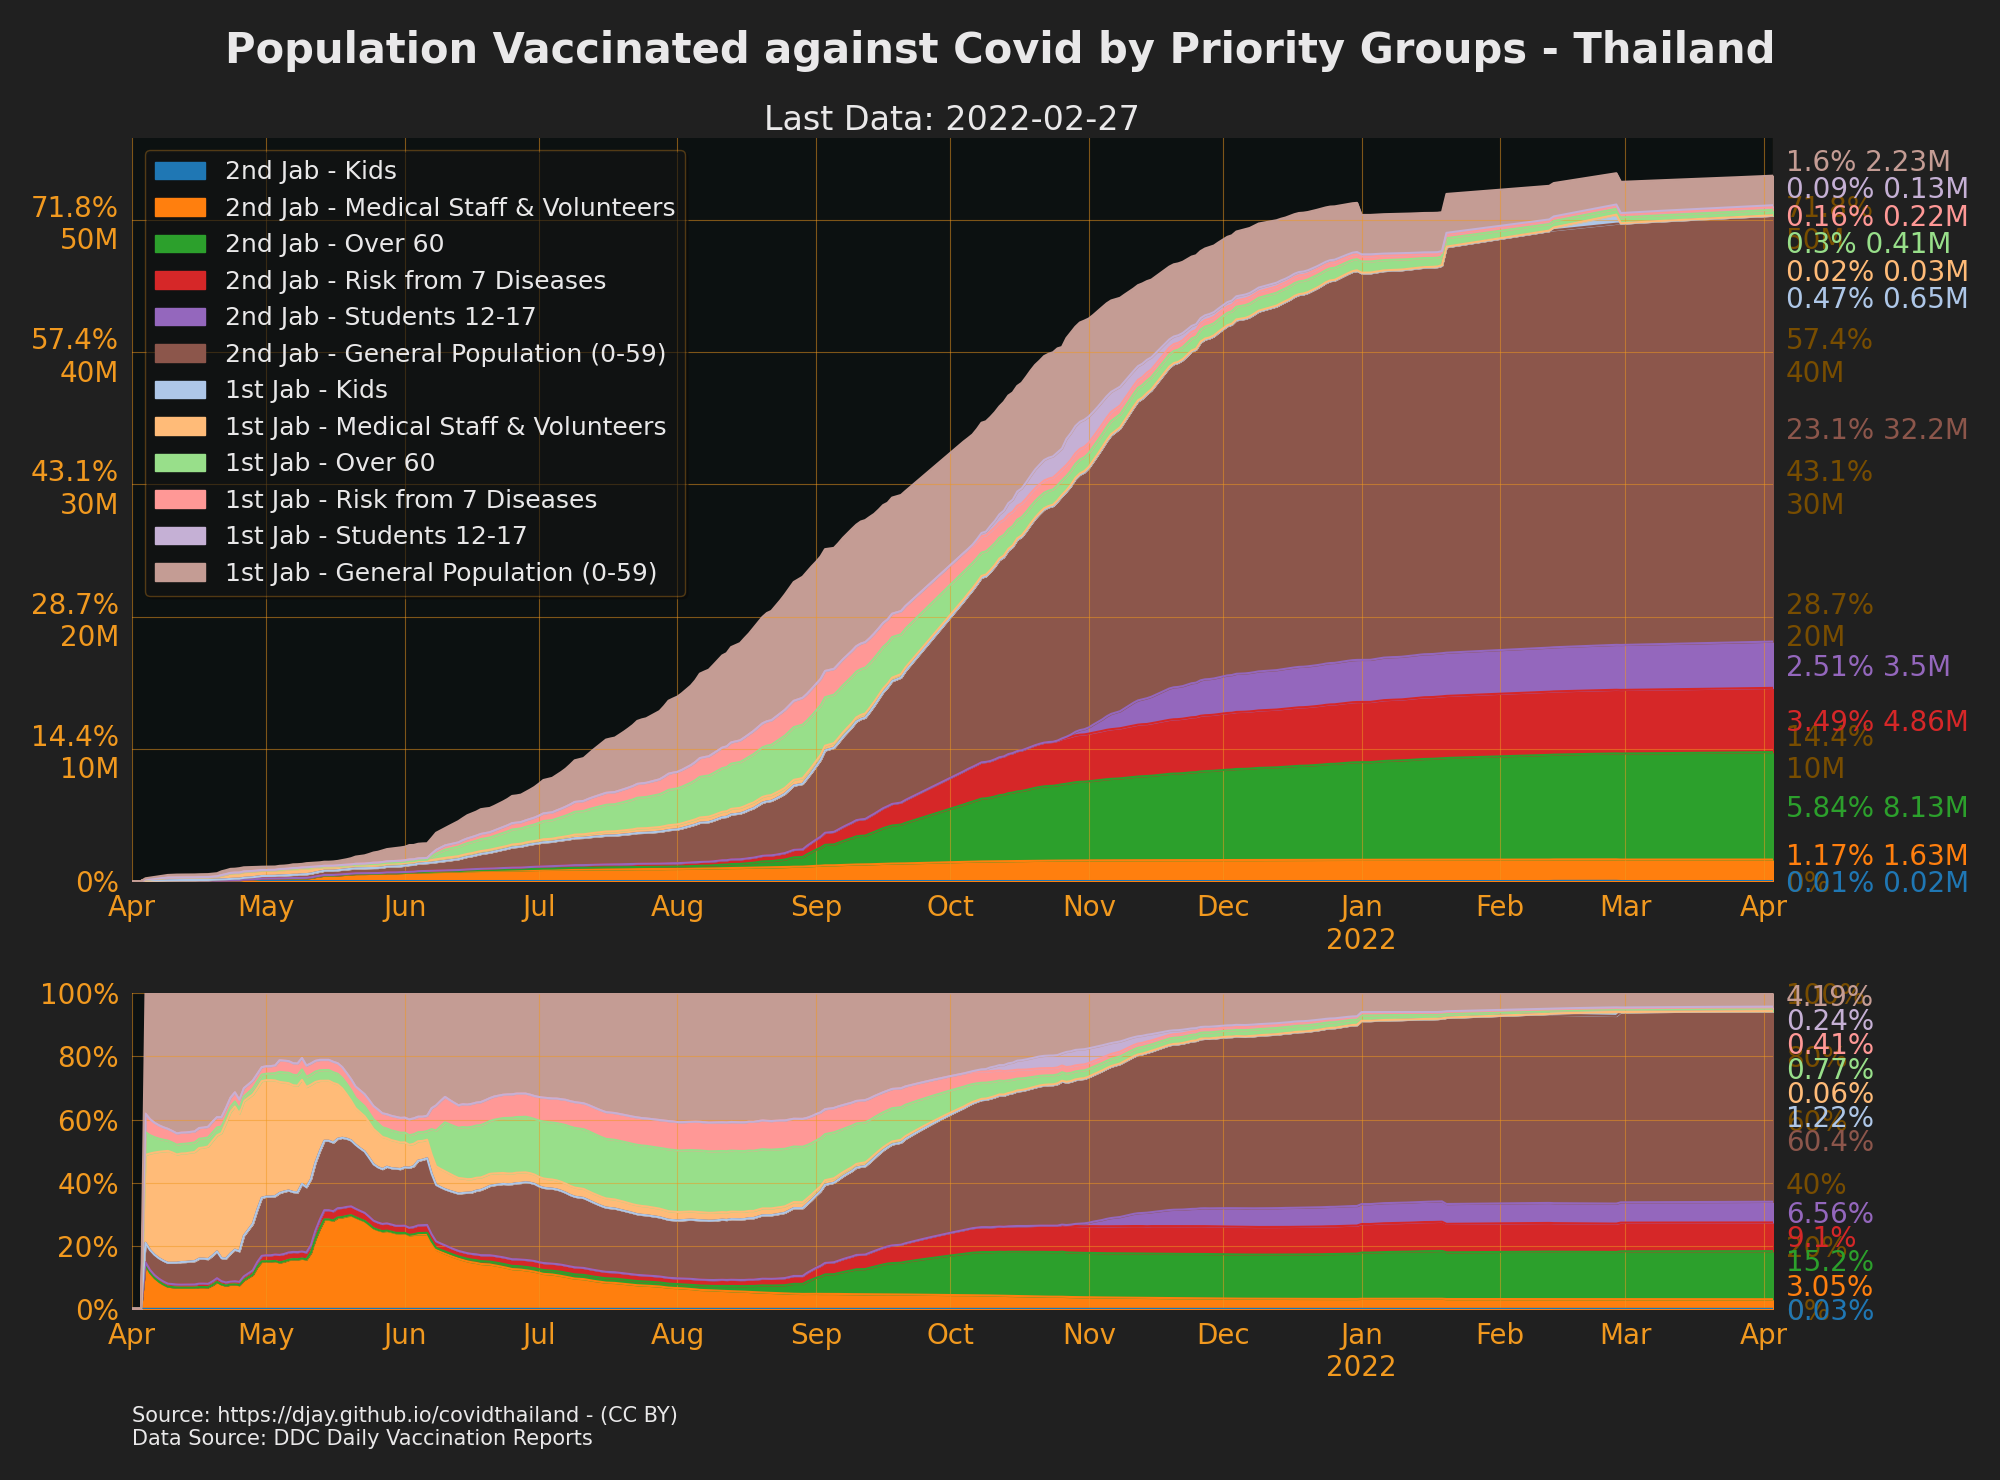 Vaccinations in Thailand